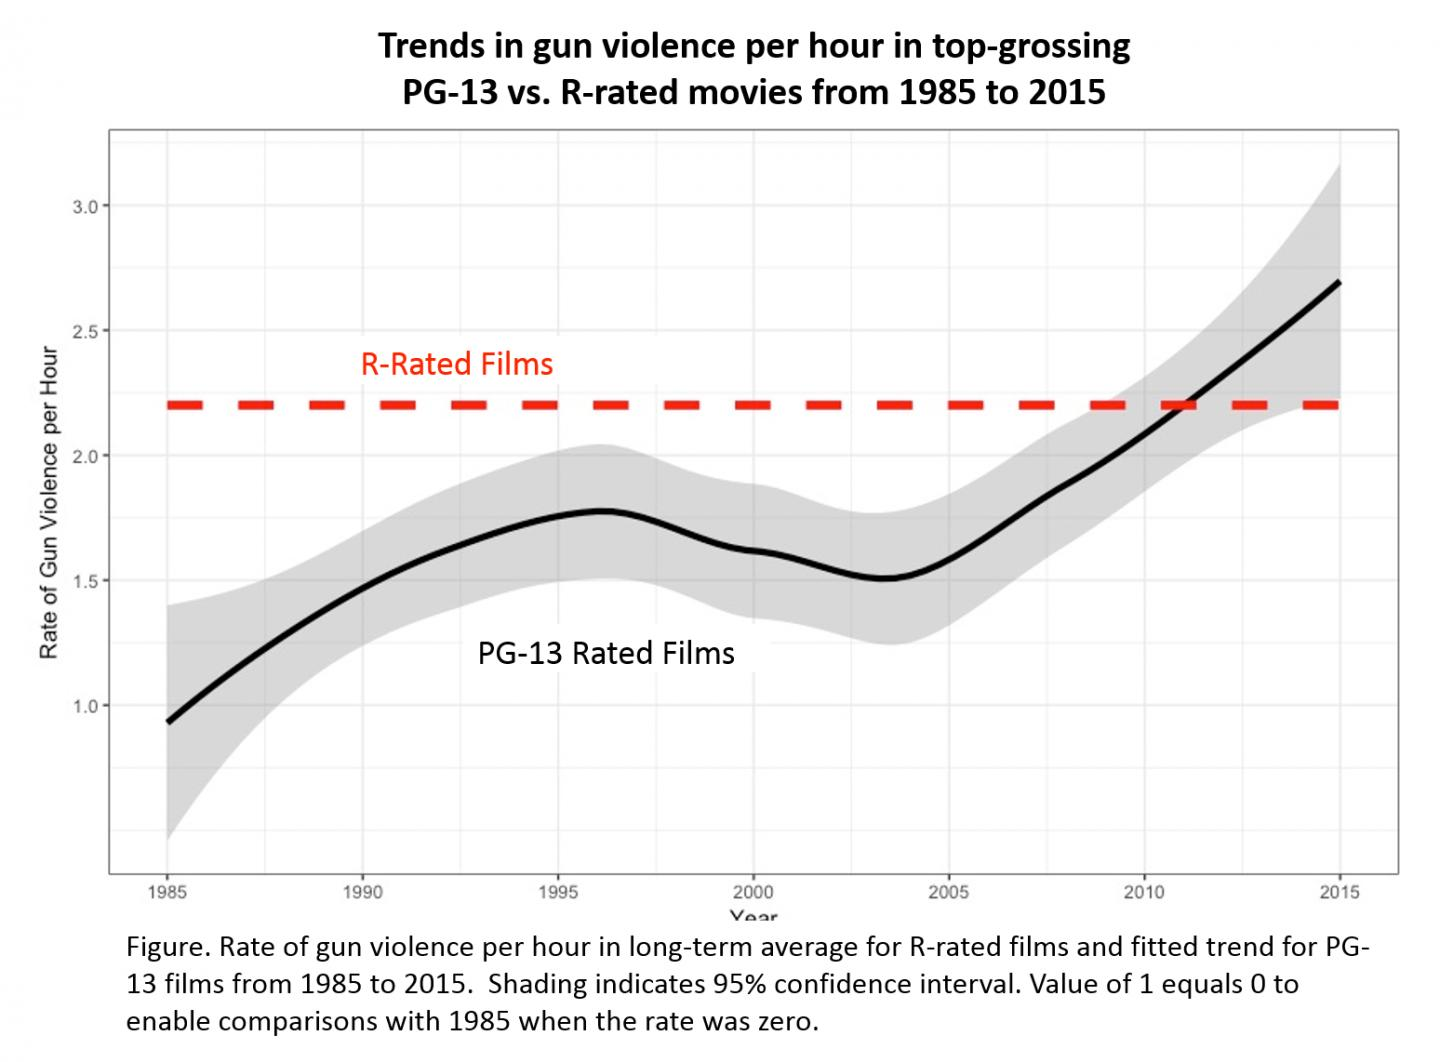 Trends in Gun Violence in Top-grossing PG-13 vs. R-rated Movies, 1985-2015